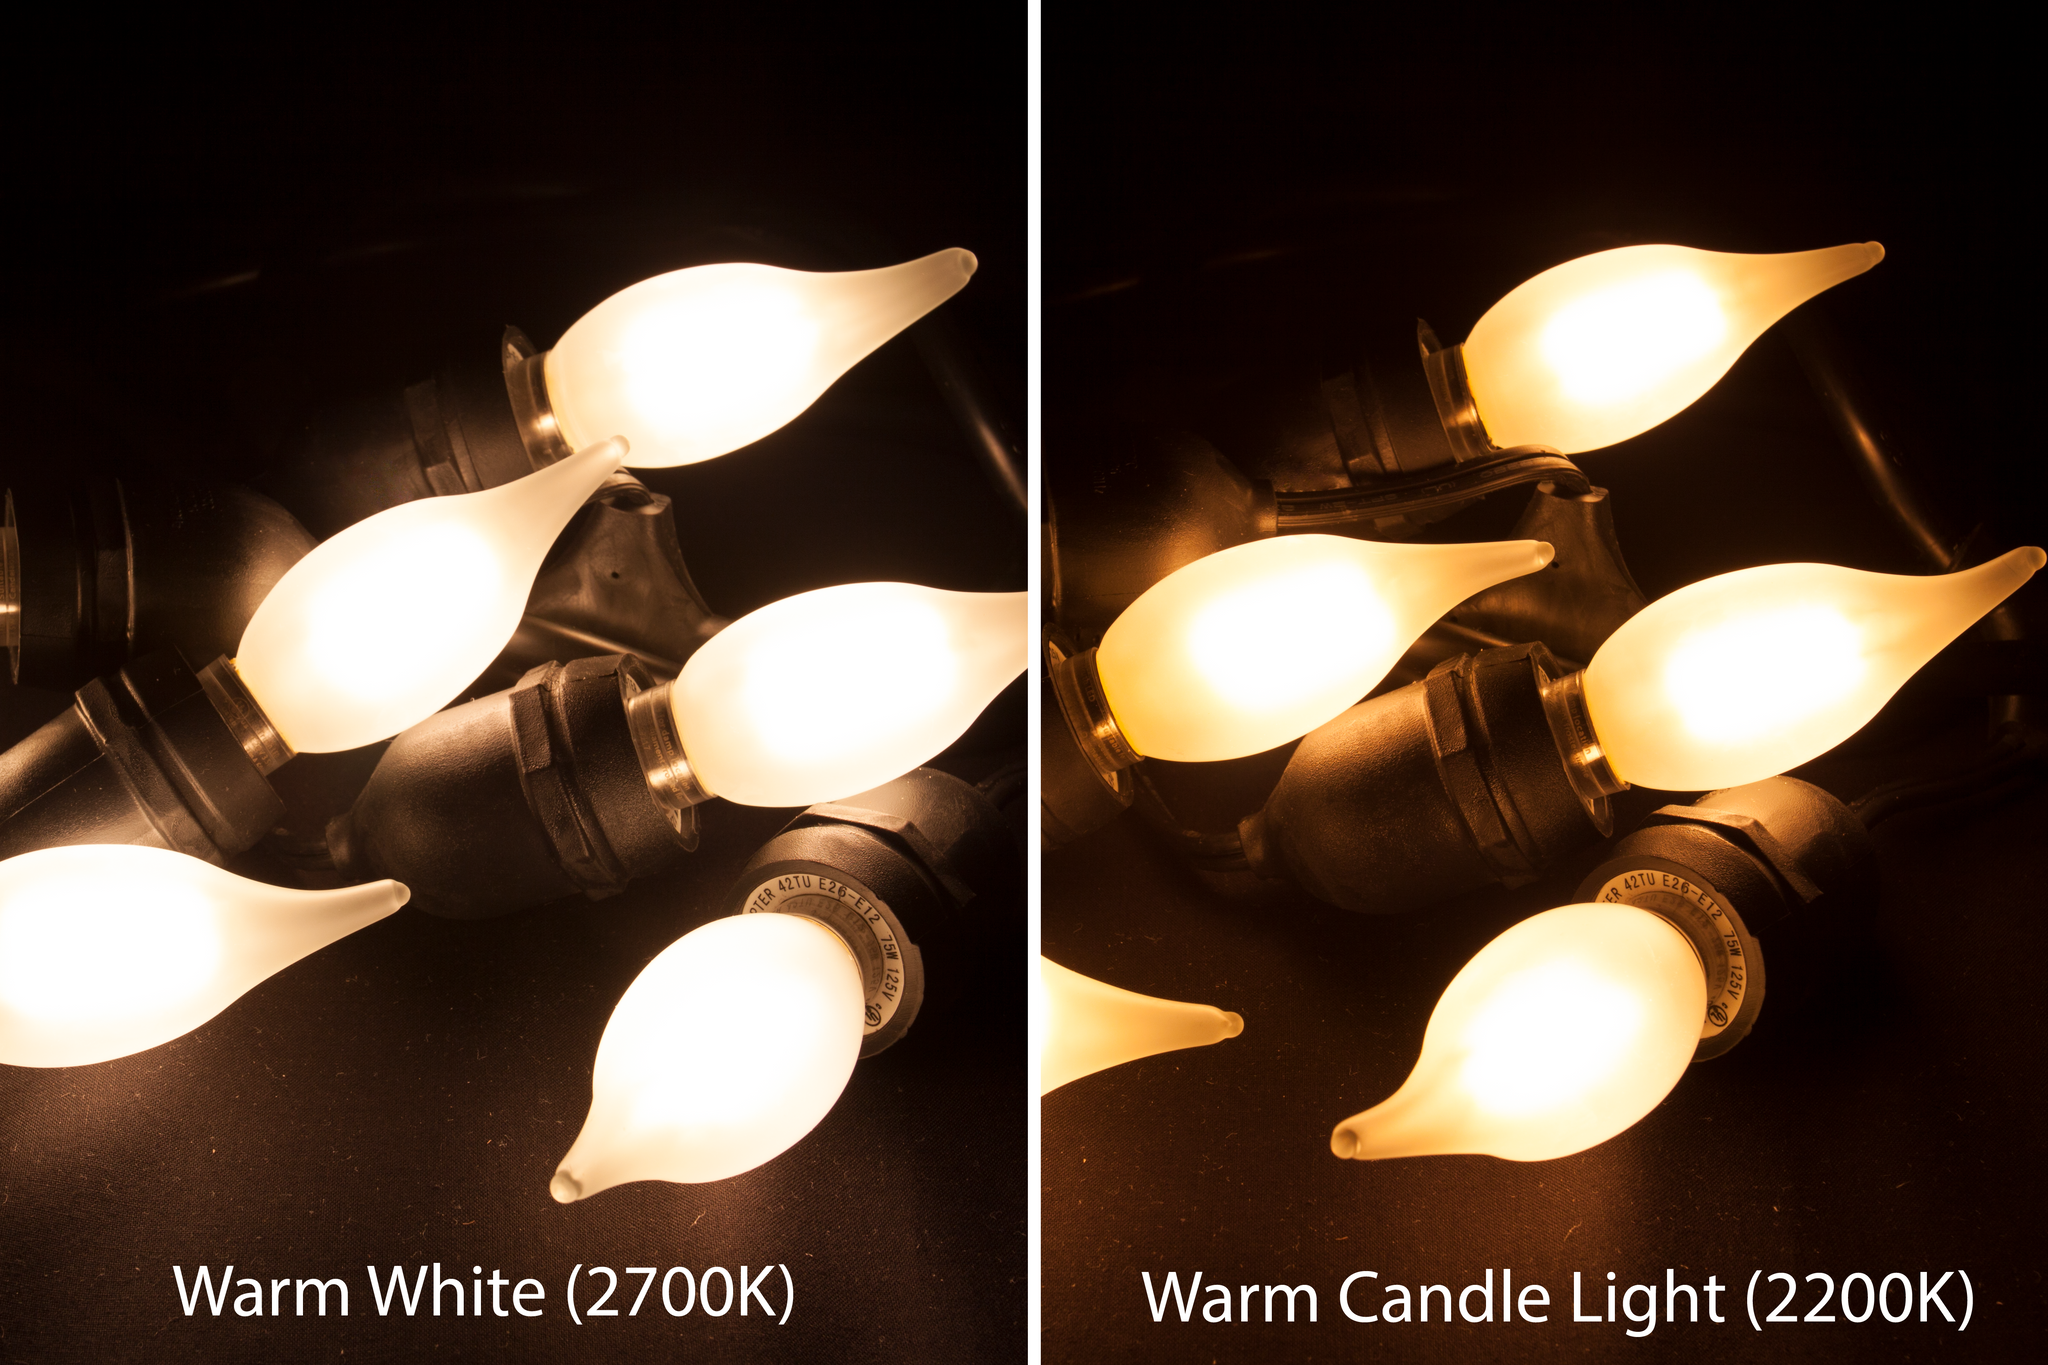 Led candelabra style filament frosted glass light bulb 40w candelabra filament led light bulb flame tip frosted glass 35w replaces 40w aloadofball Image collections